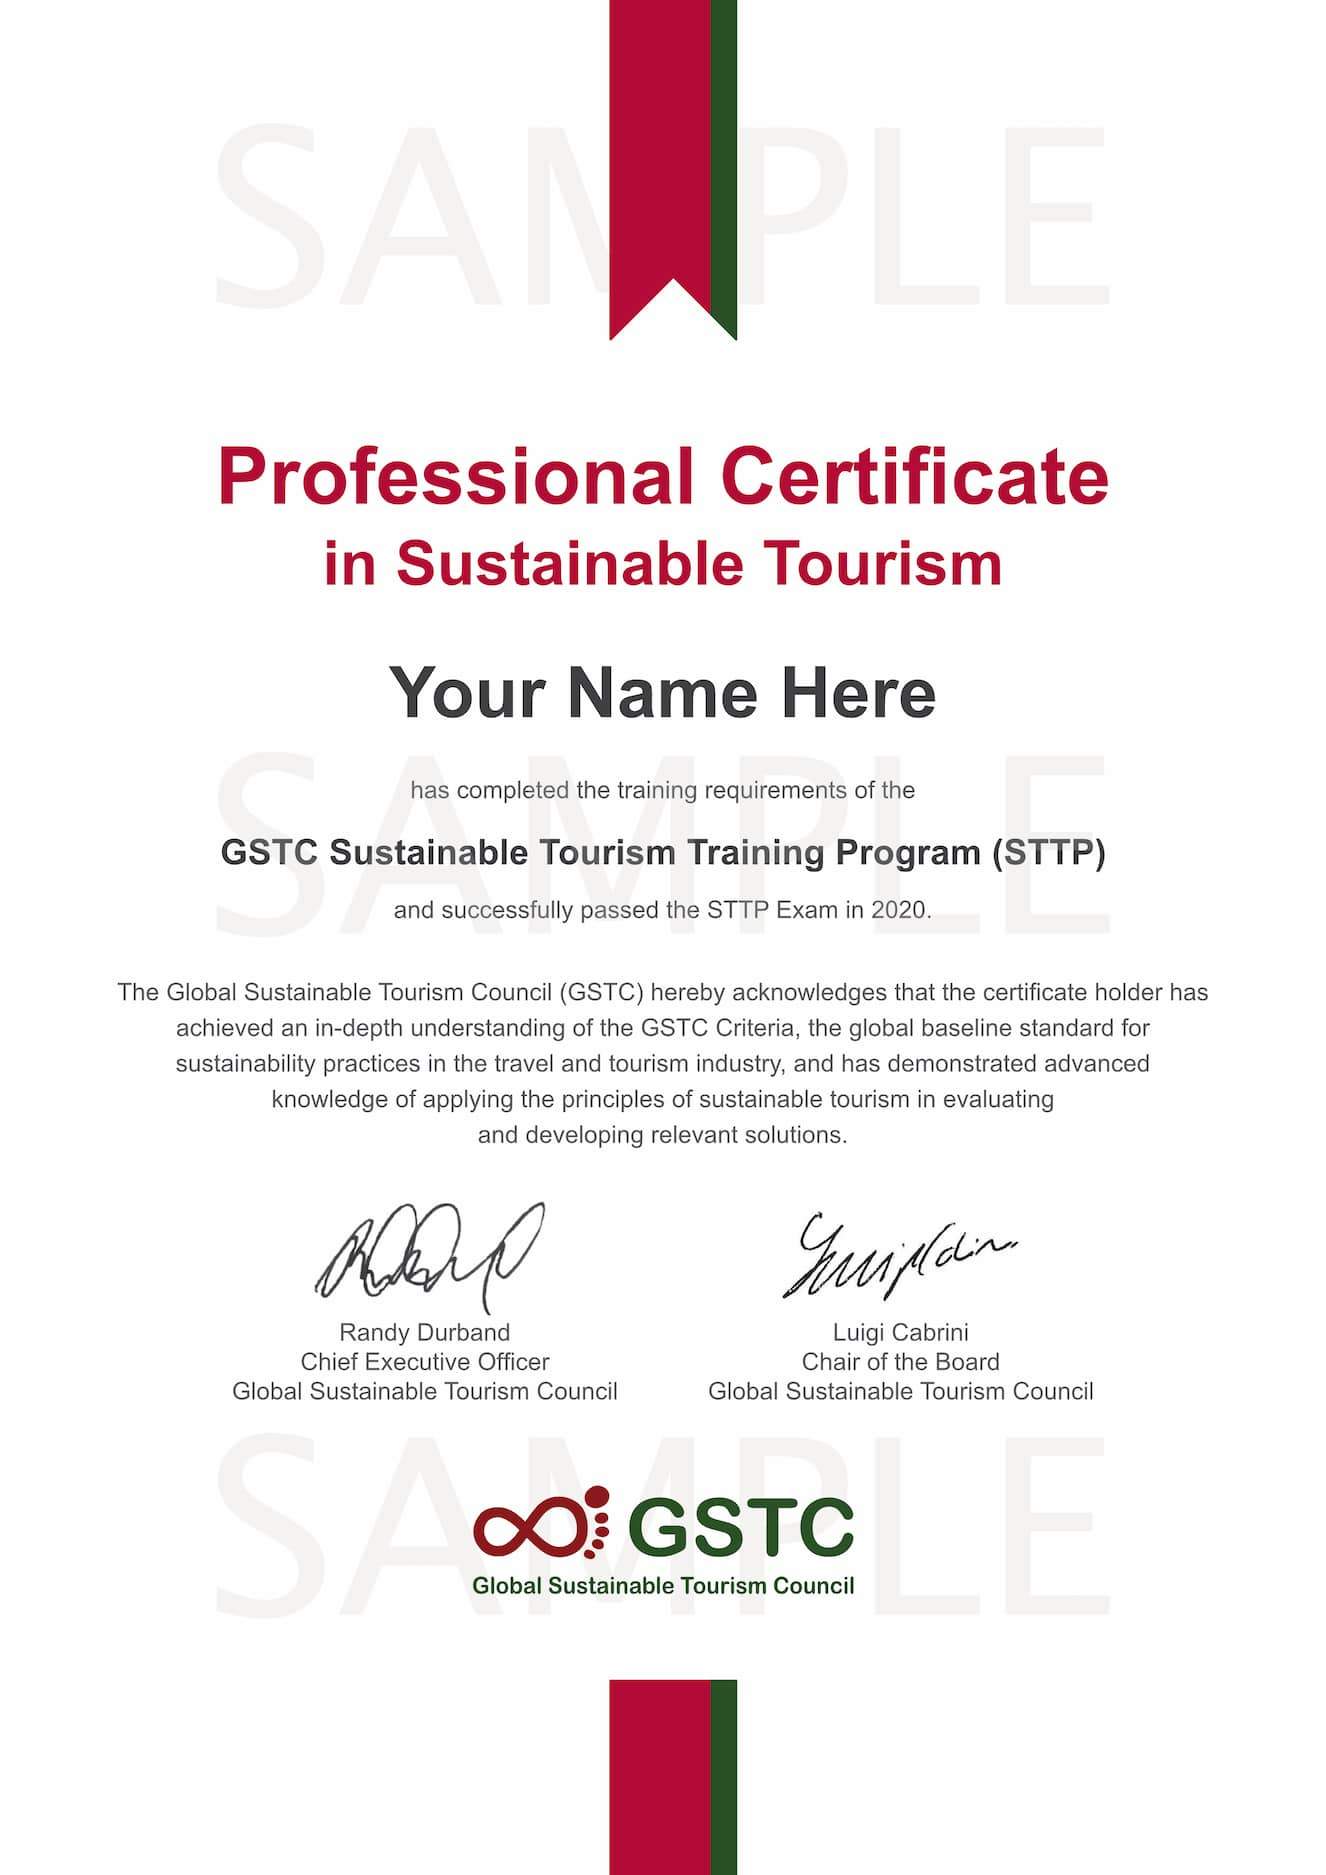 GSTC Certificate in Sustainable Tourism